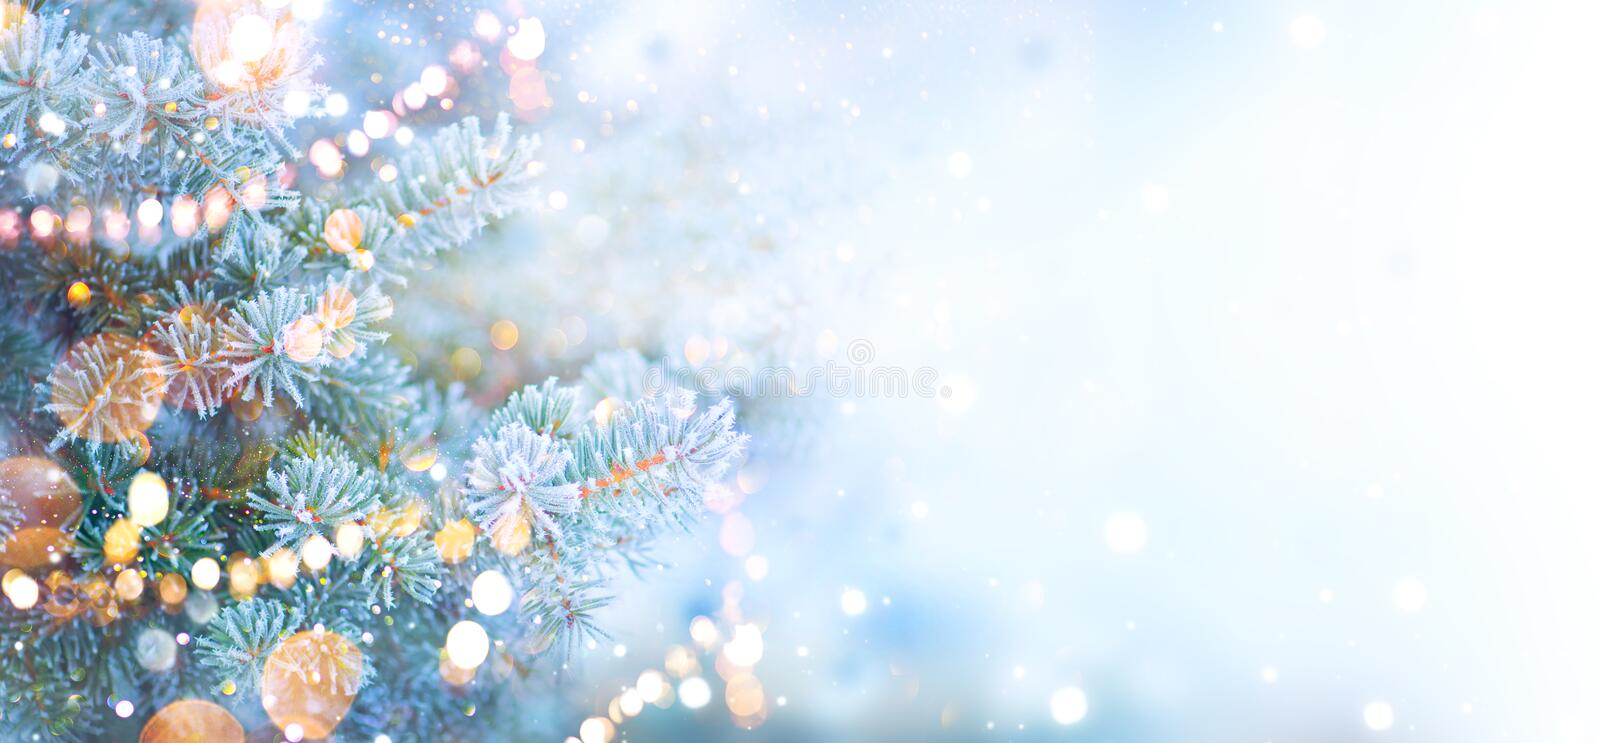 Christmas holiday tree decorated with garland lights. Border snow background royalty free stock images